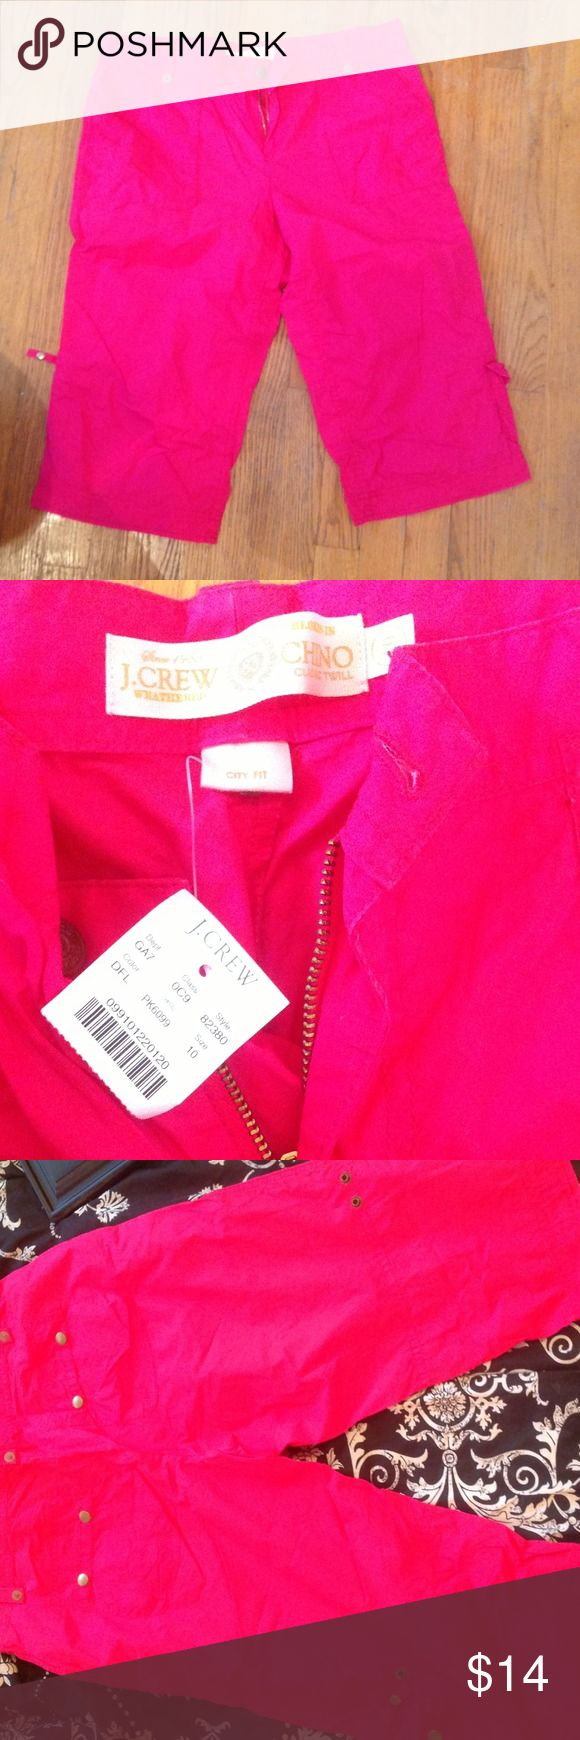 J crew bold pink capris These comfy capris are the perfect way to stand out on those summer camping and hiking adventures! Lots of pockets to carry all your necessities- who says you have to look rough when roughing it? J. Crew Pants Capris